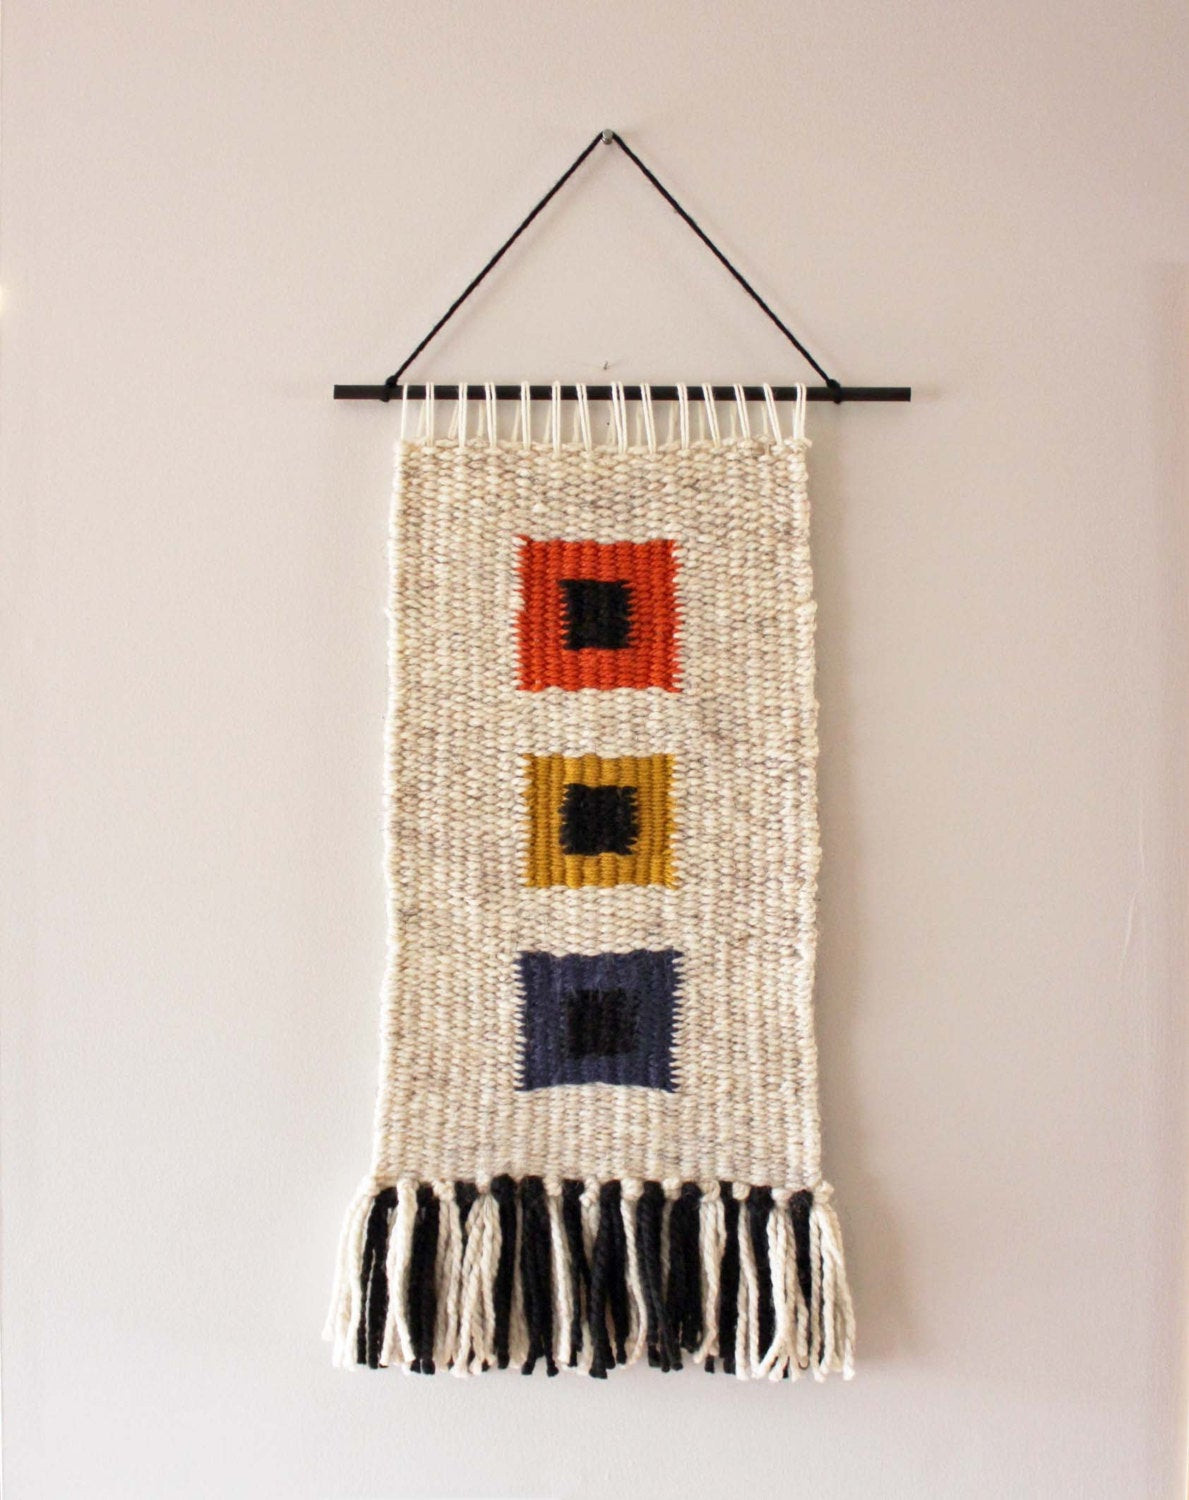 Best ideas about Woven Wall Art . Save or Pin Woven Wall Hanging Weaving Woven Wall Art Fiberart Now.